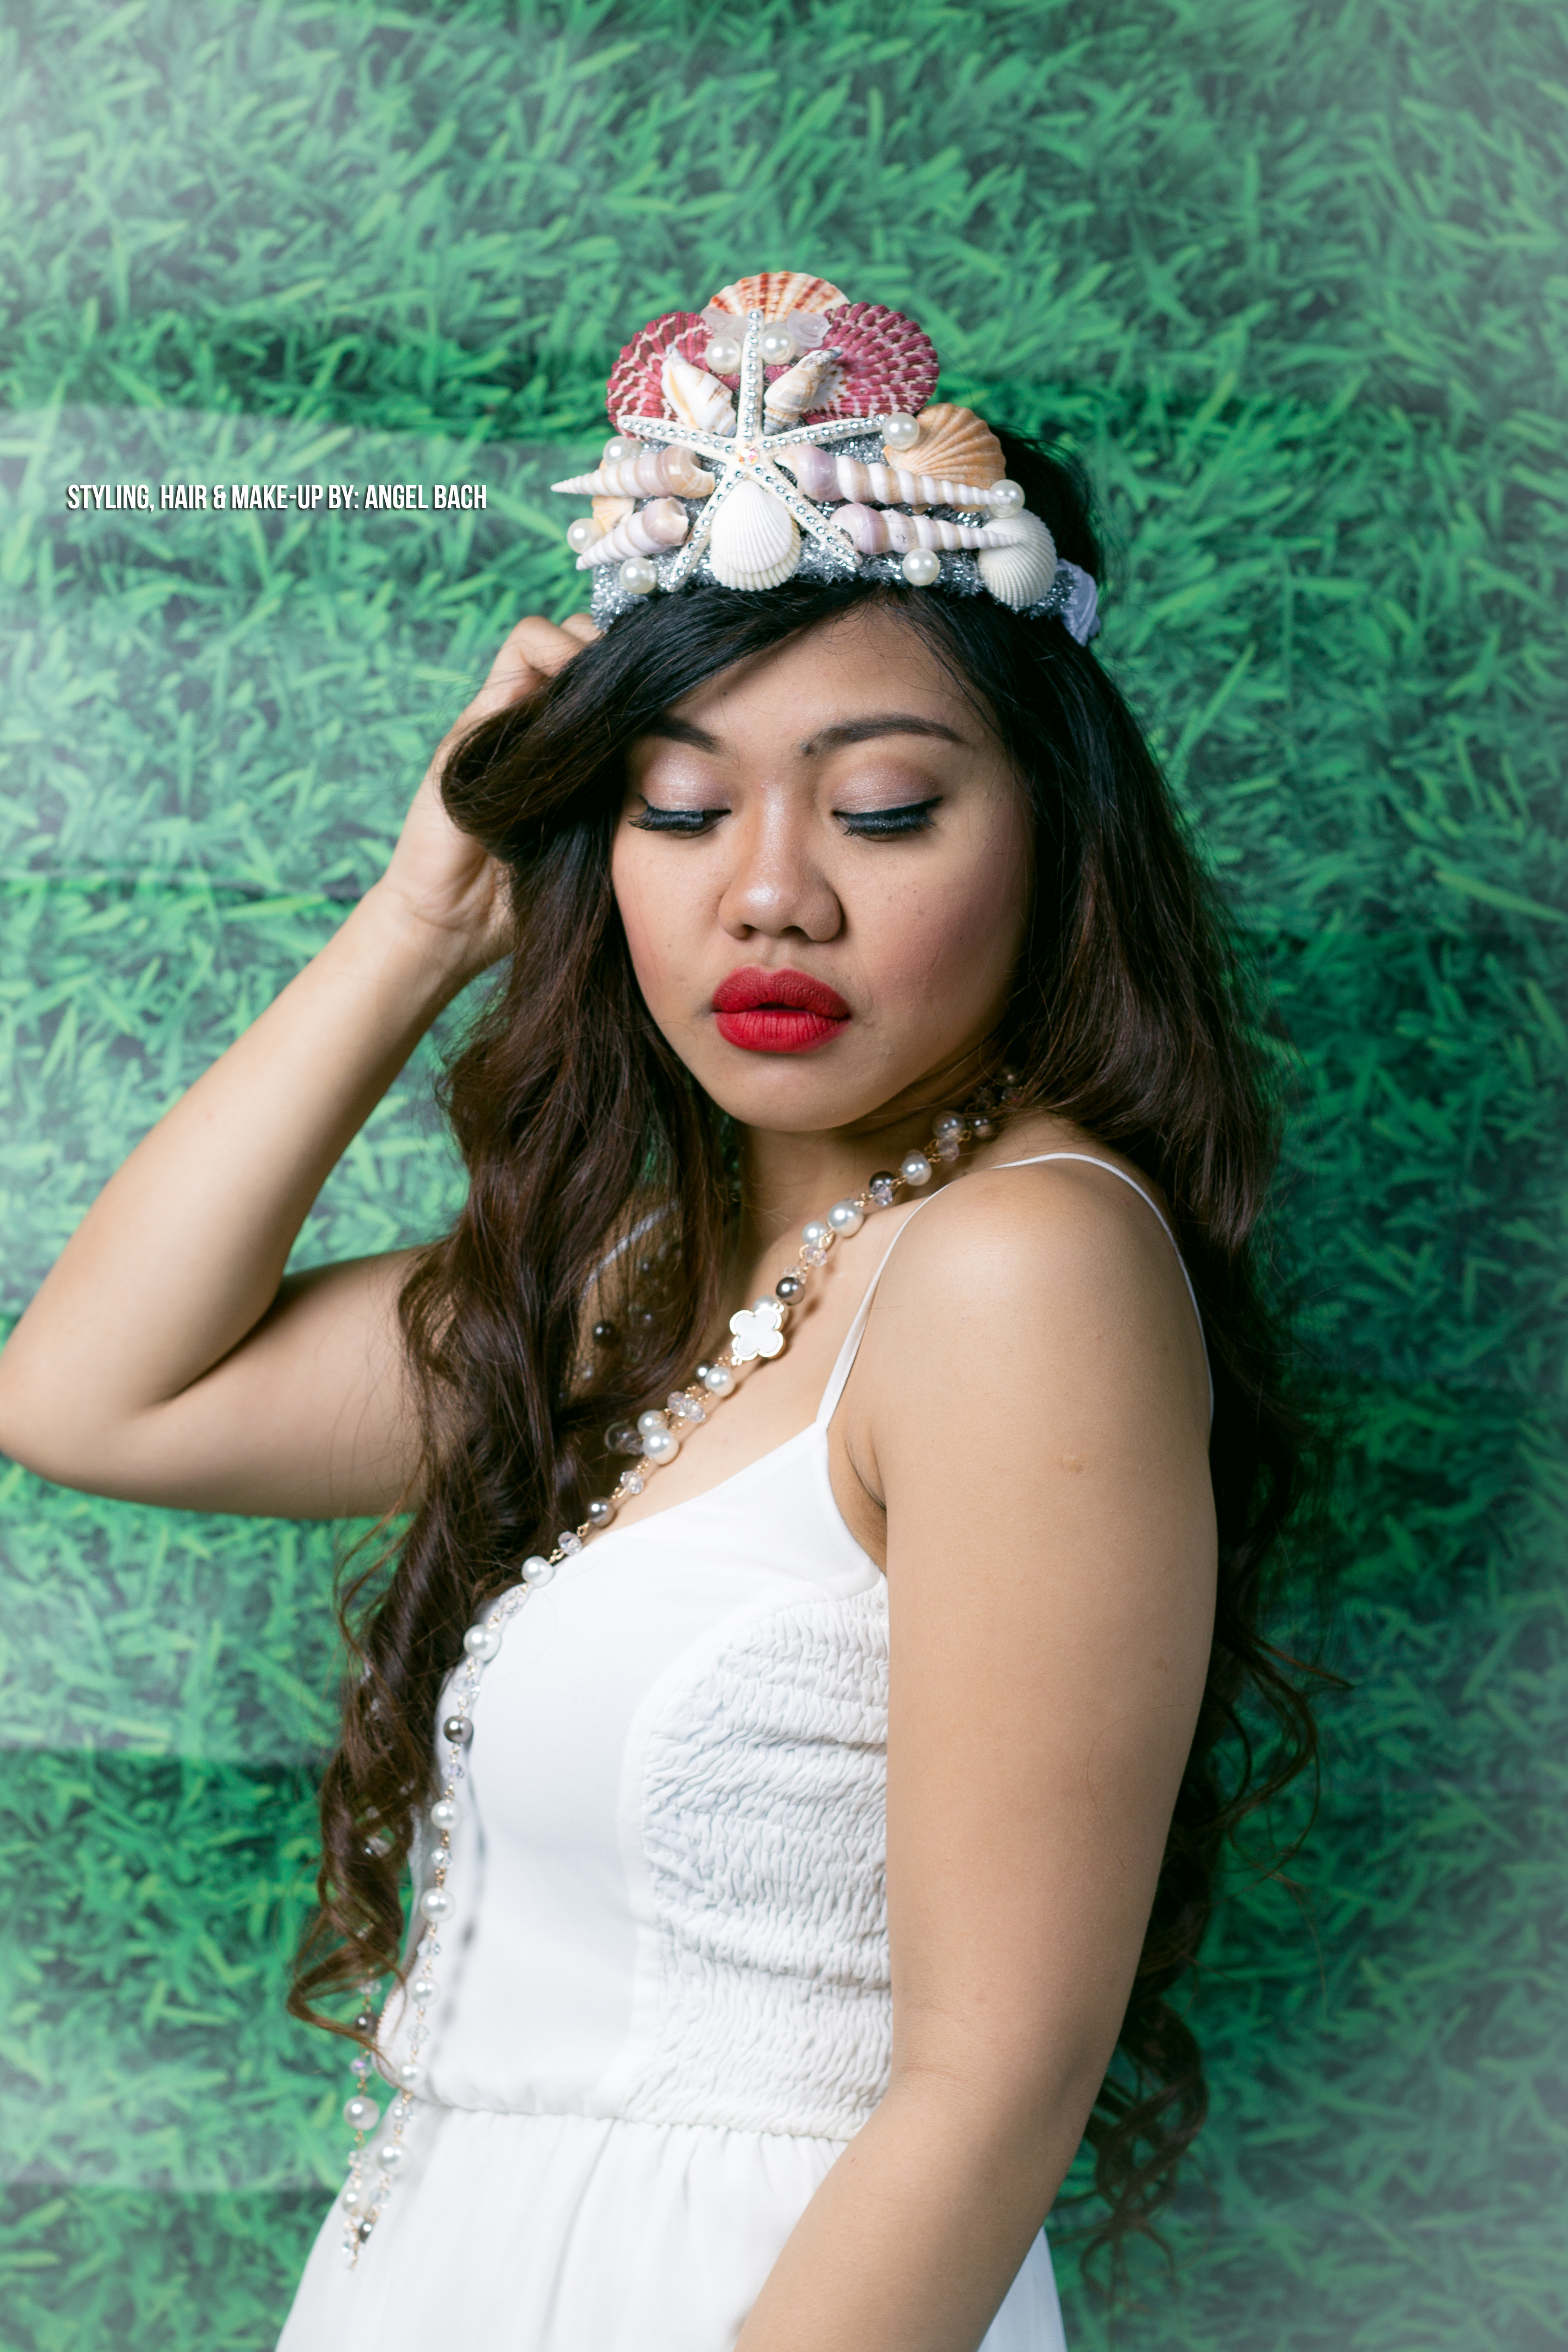 Beach Look, Smokey Eyeshadow, Red Lipstick, Long Hair, Sea Shells Tiara, 30 Mins Make-Up Look